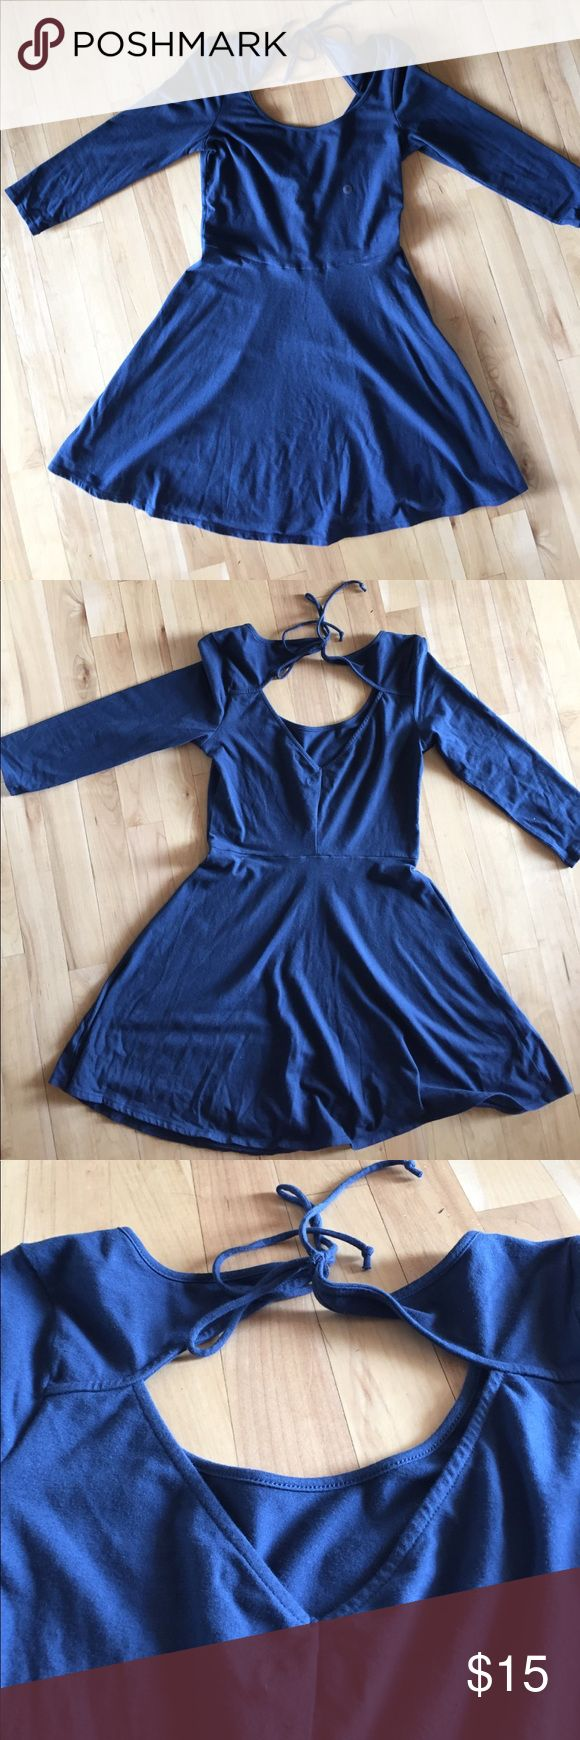 Navy blue skater dress Navy blue with a string tie in the back(open) American Eagle Outfitters Dresses Mini